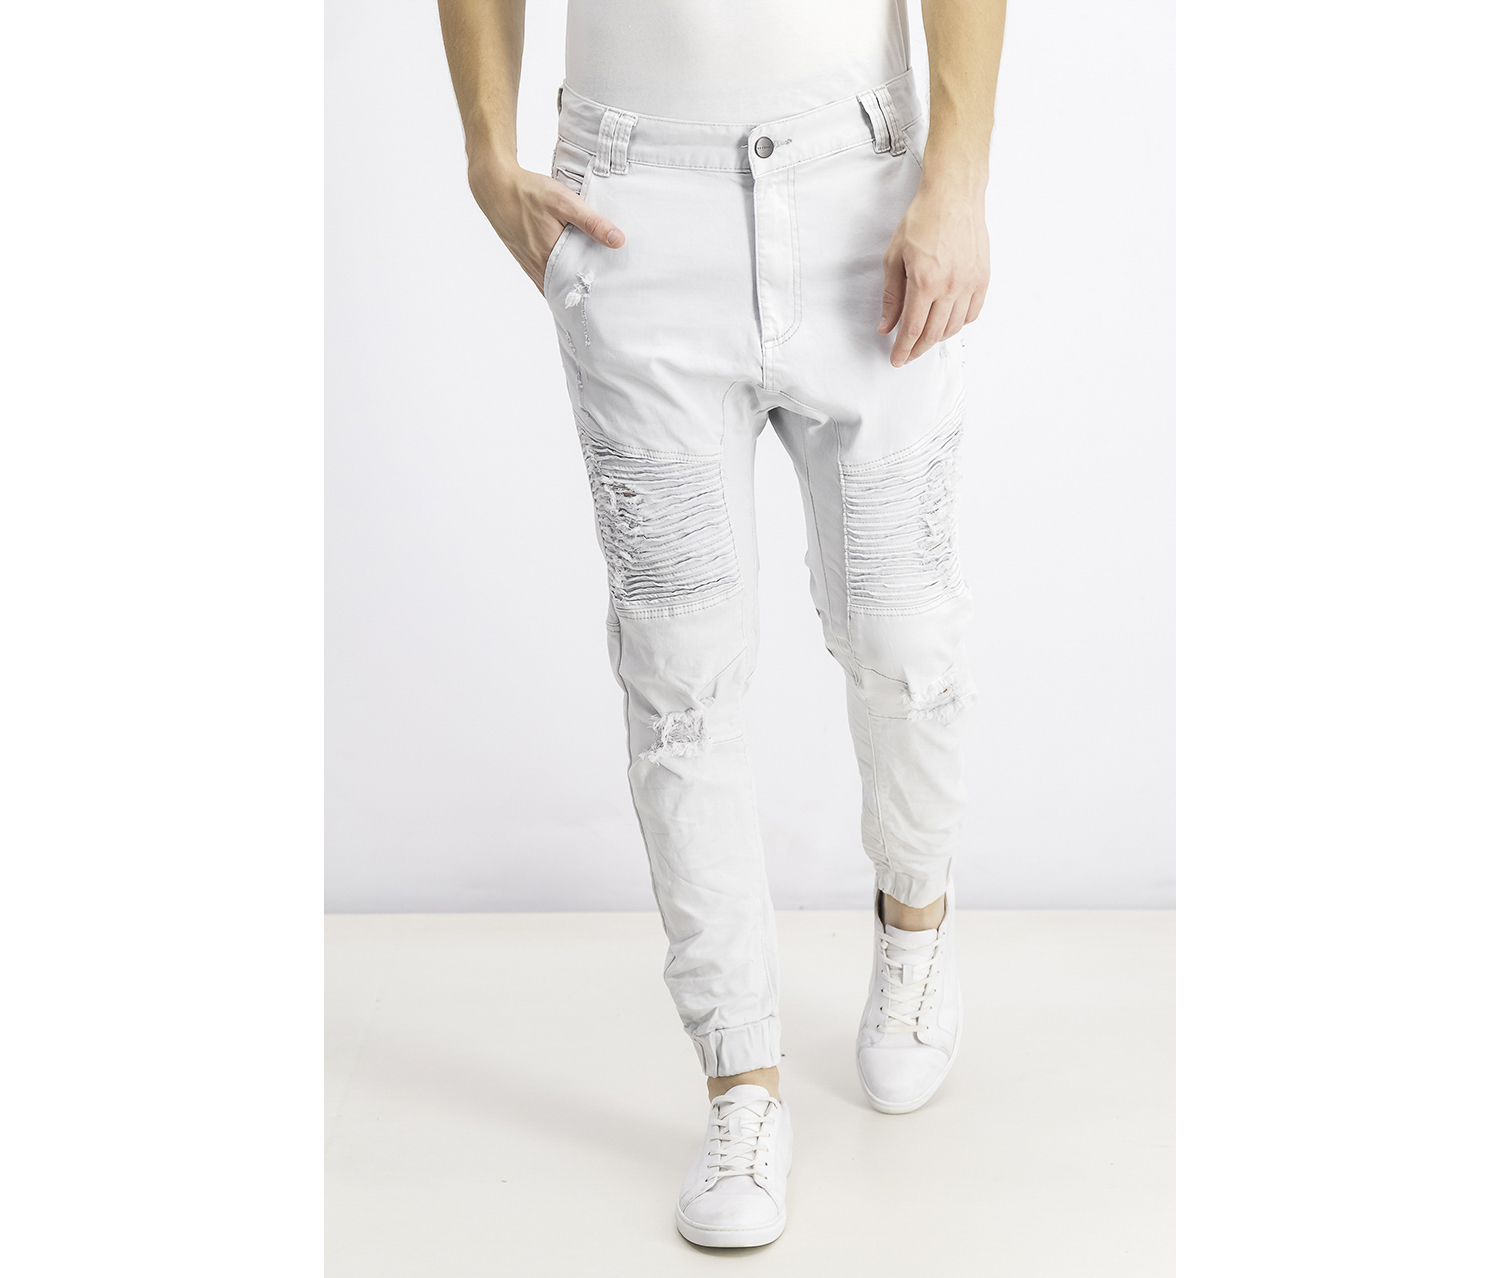 Men's Signature Destroyer Drop Crotch Jeans, Silver Star